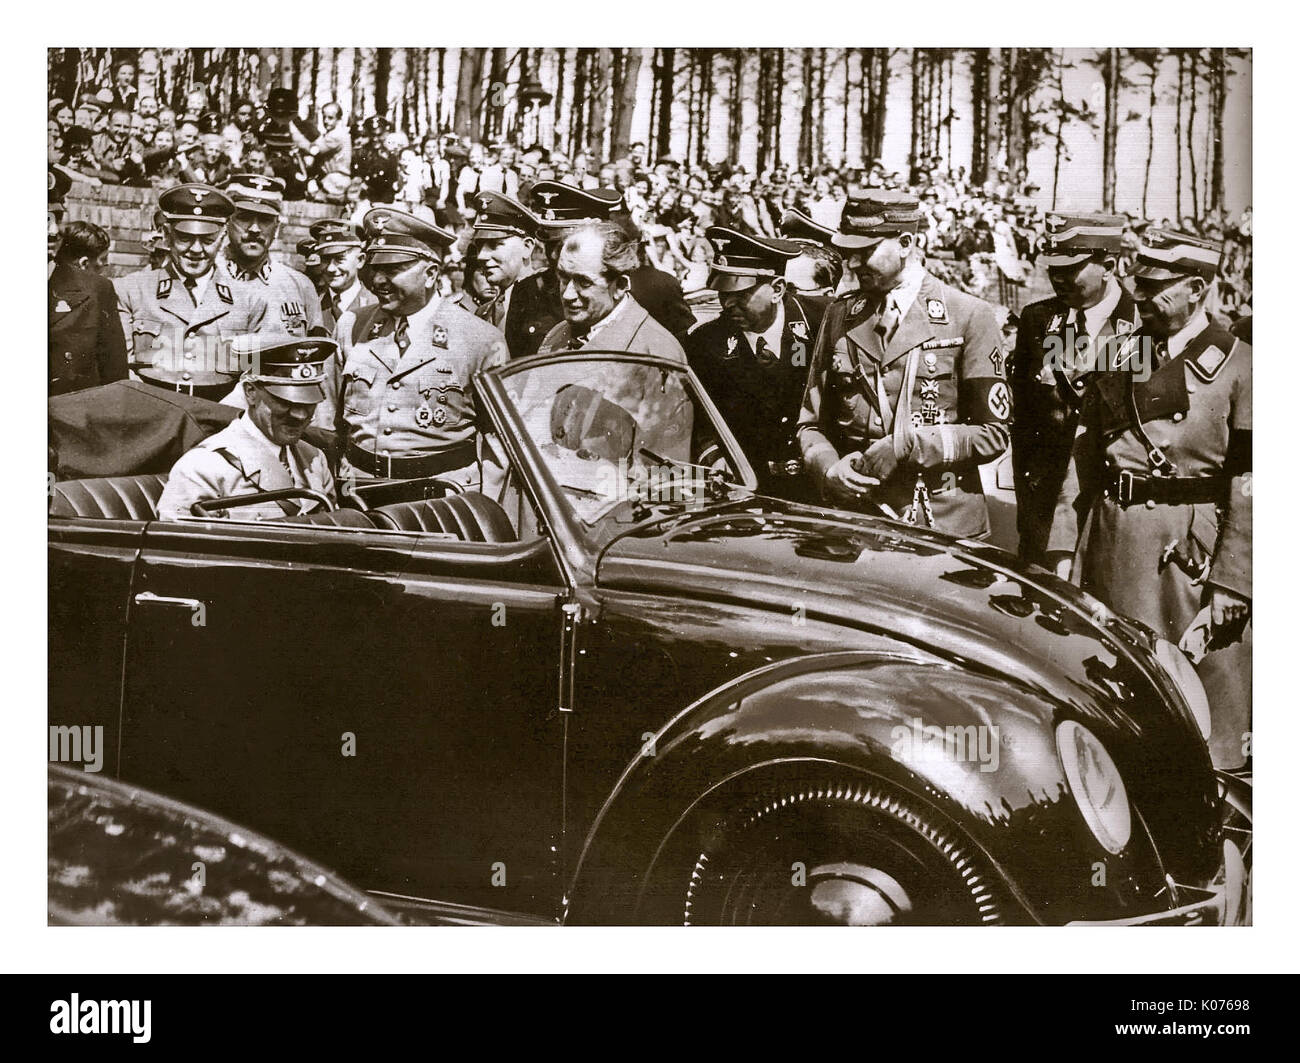 ADOLF HITLER with DR. PORSCHE at the launch of 'the people's car' KDF VW Volkswagen Beetle prototype convertible air-cooled motorcar Fallersleben Wolfsburg Germany - Stock Image